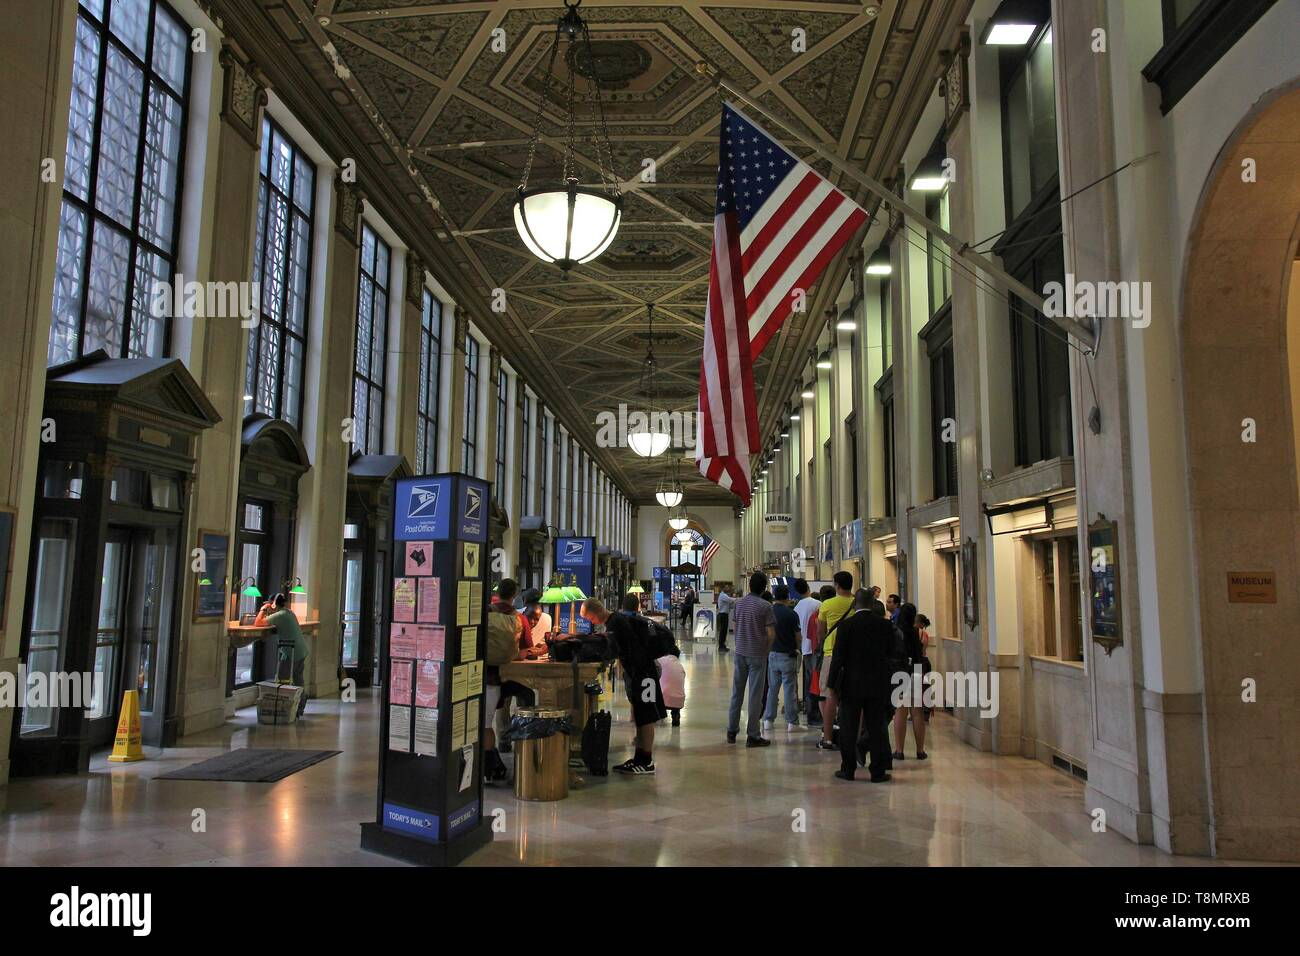 NEW YORK, USA - JULY 1, 2013: People visit famous James Farley Post Office in New York. It dates back to 1912 and is listed on National Register of Hi - Stock Image